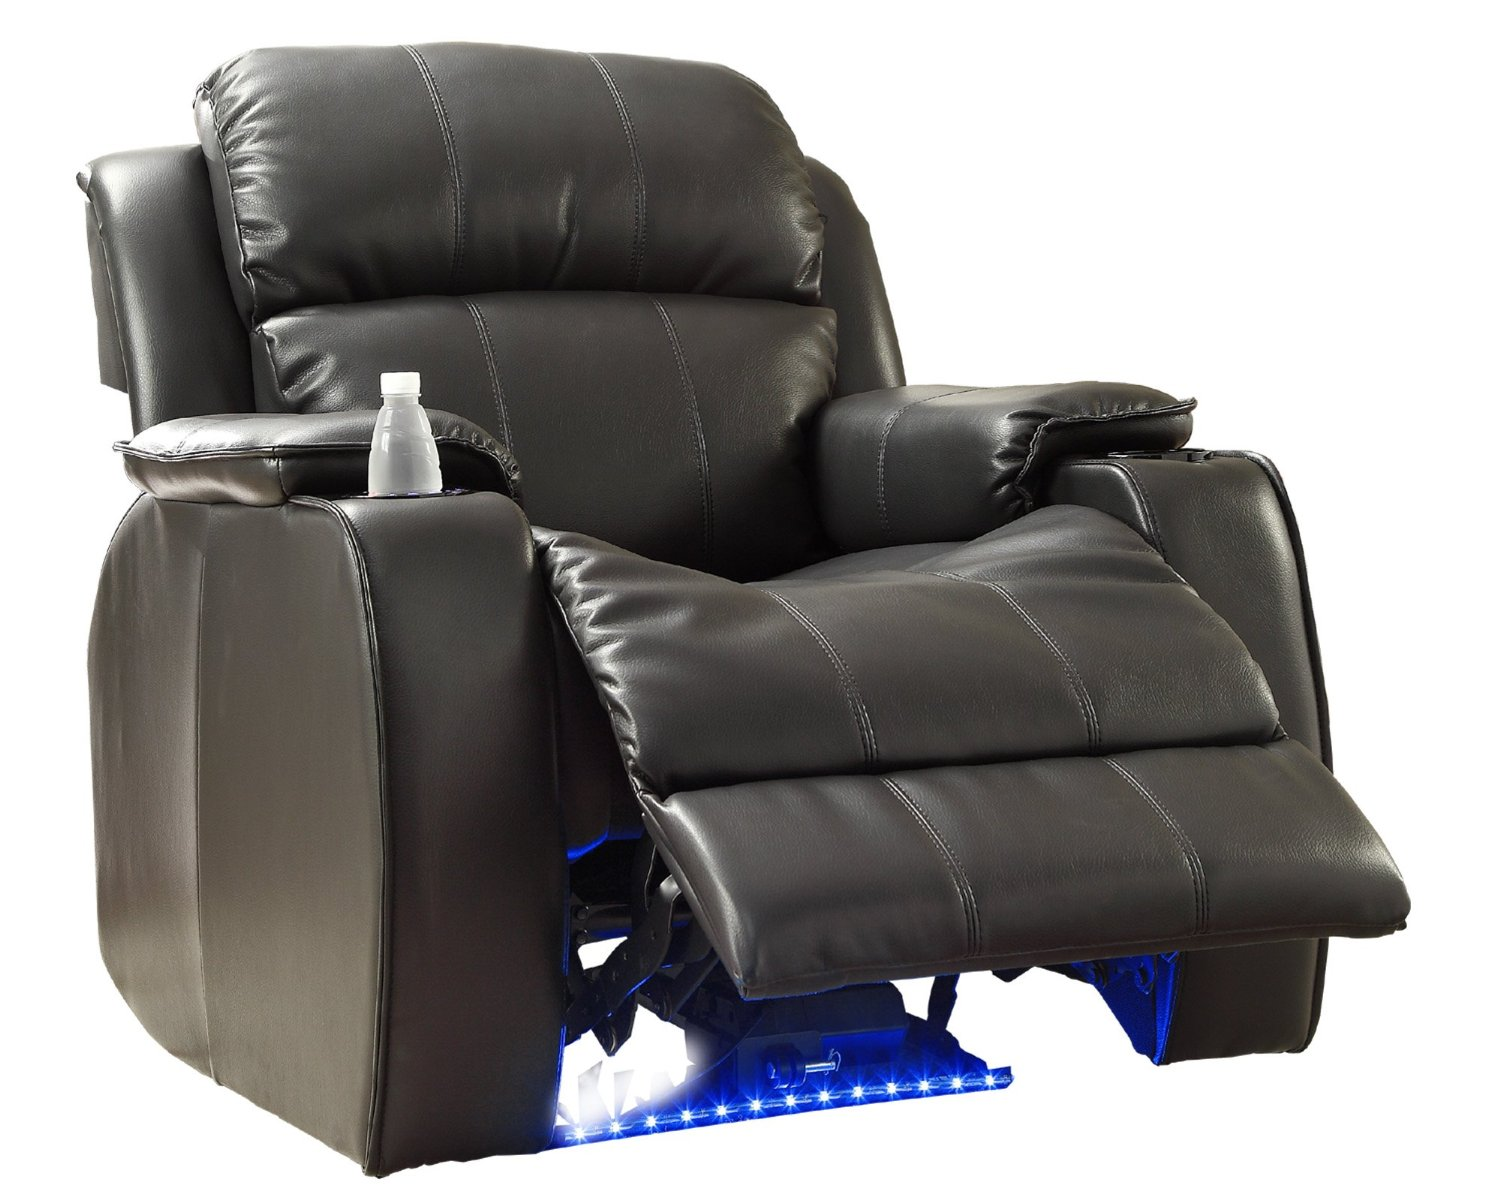 top 3 best quality recliners with coolers | best recliners